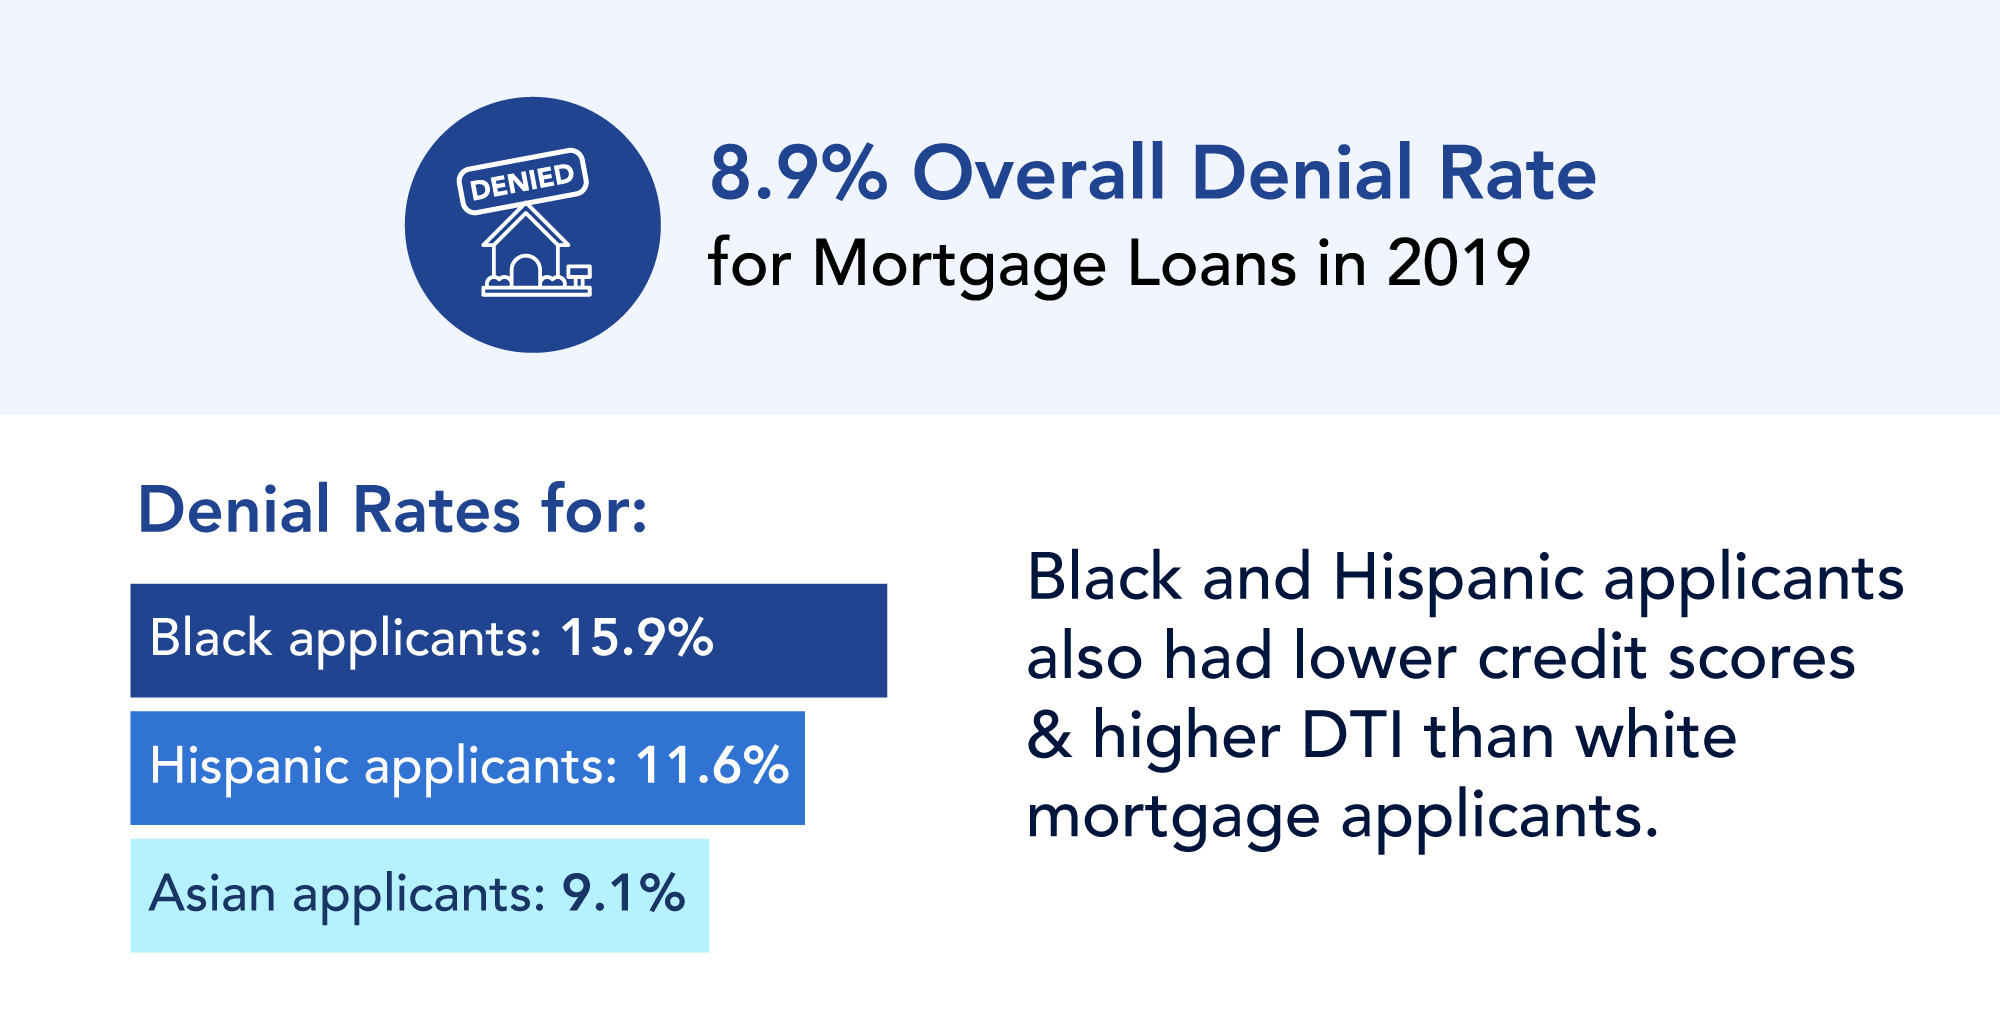 The overall loan denial rate for conventional and non-conventional loans in 2019 was 8.9%.  The denial rate for Black applicants was 15.9%, 11.6% for Hispanic applicants, 9.1% for Asian applicants.   Black and Hispanic applicants also had lower credit scores and higher DTI than white mortgage applicants.